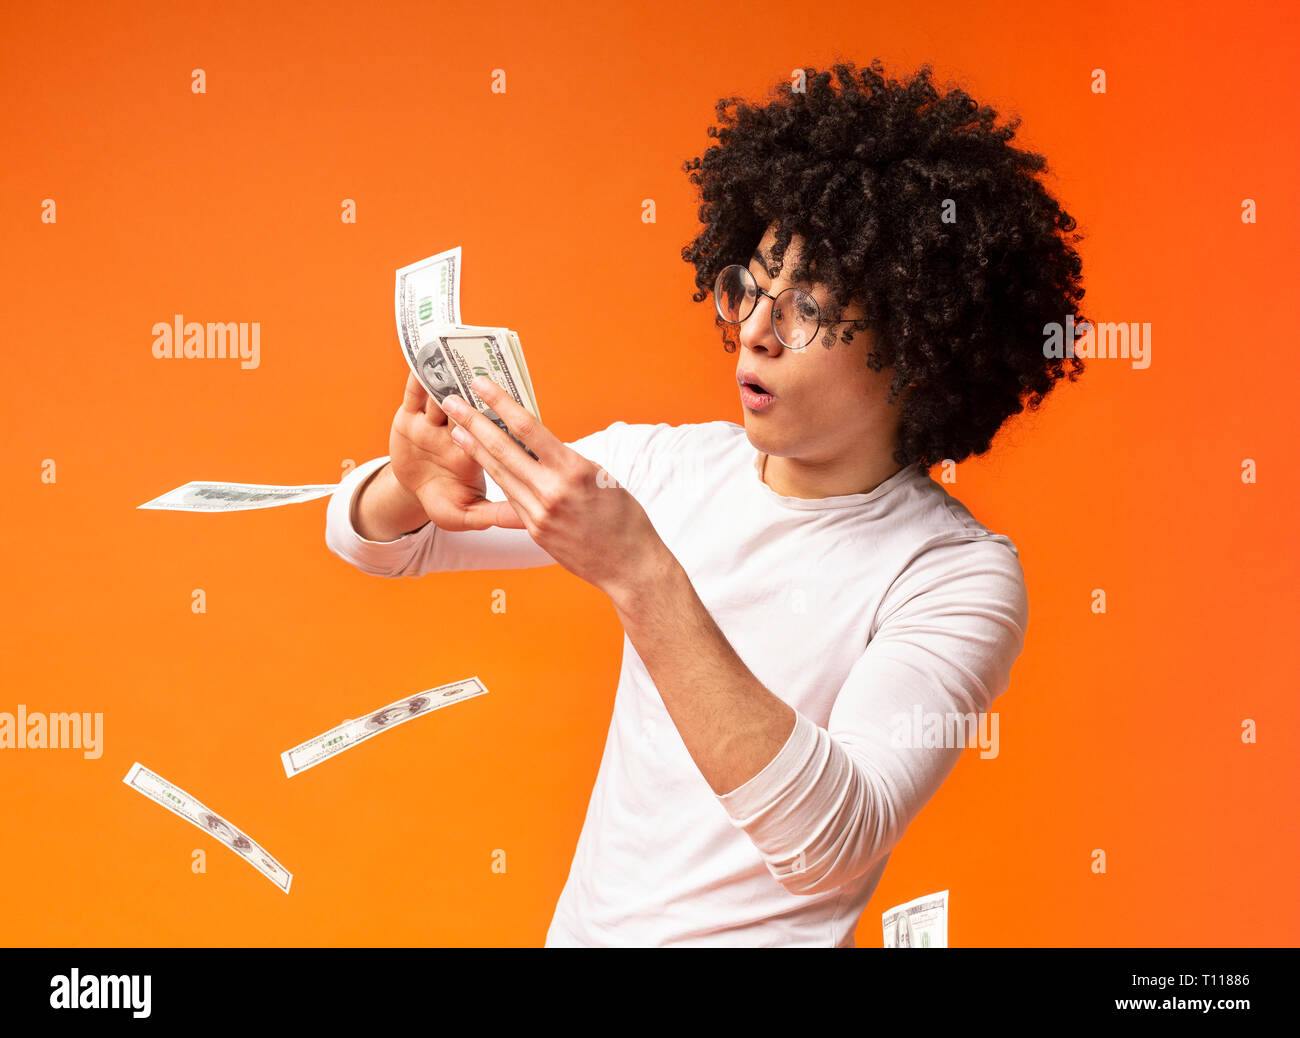 Happy young man throwing out money banknotes - Stock Image